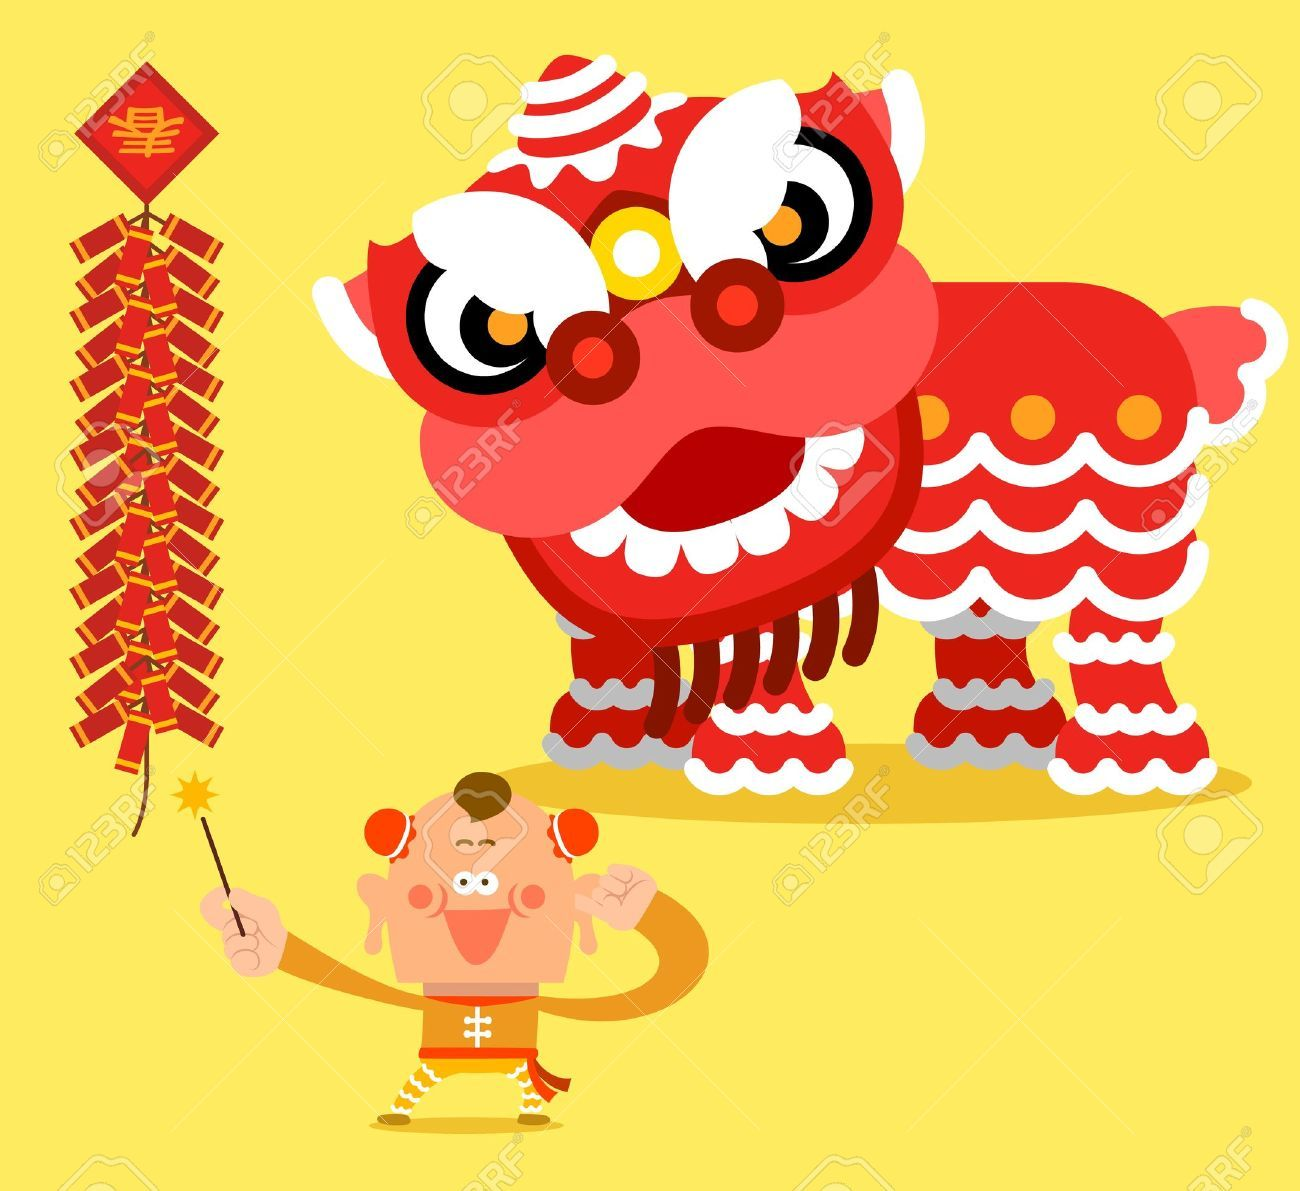 chinese new year lion dance clipart.